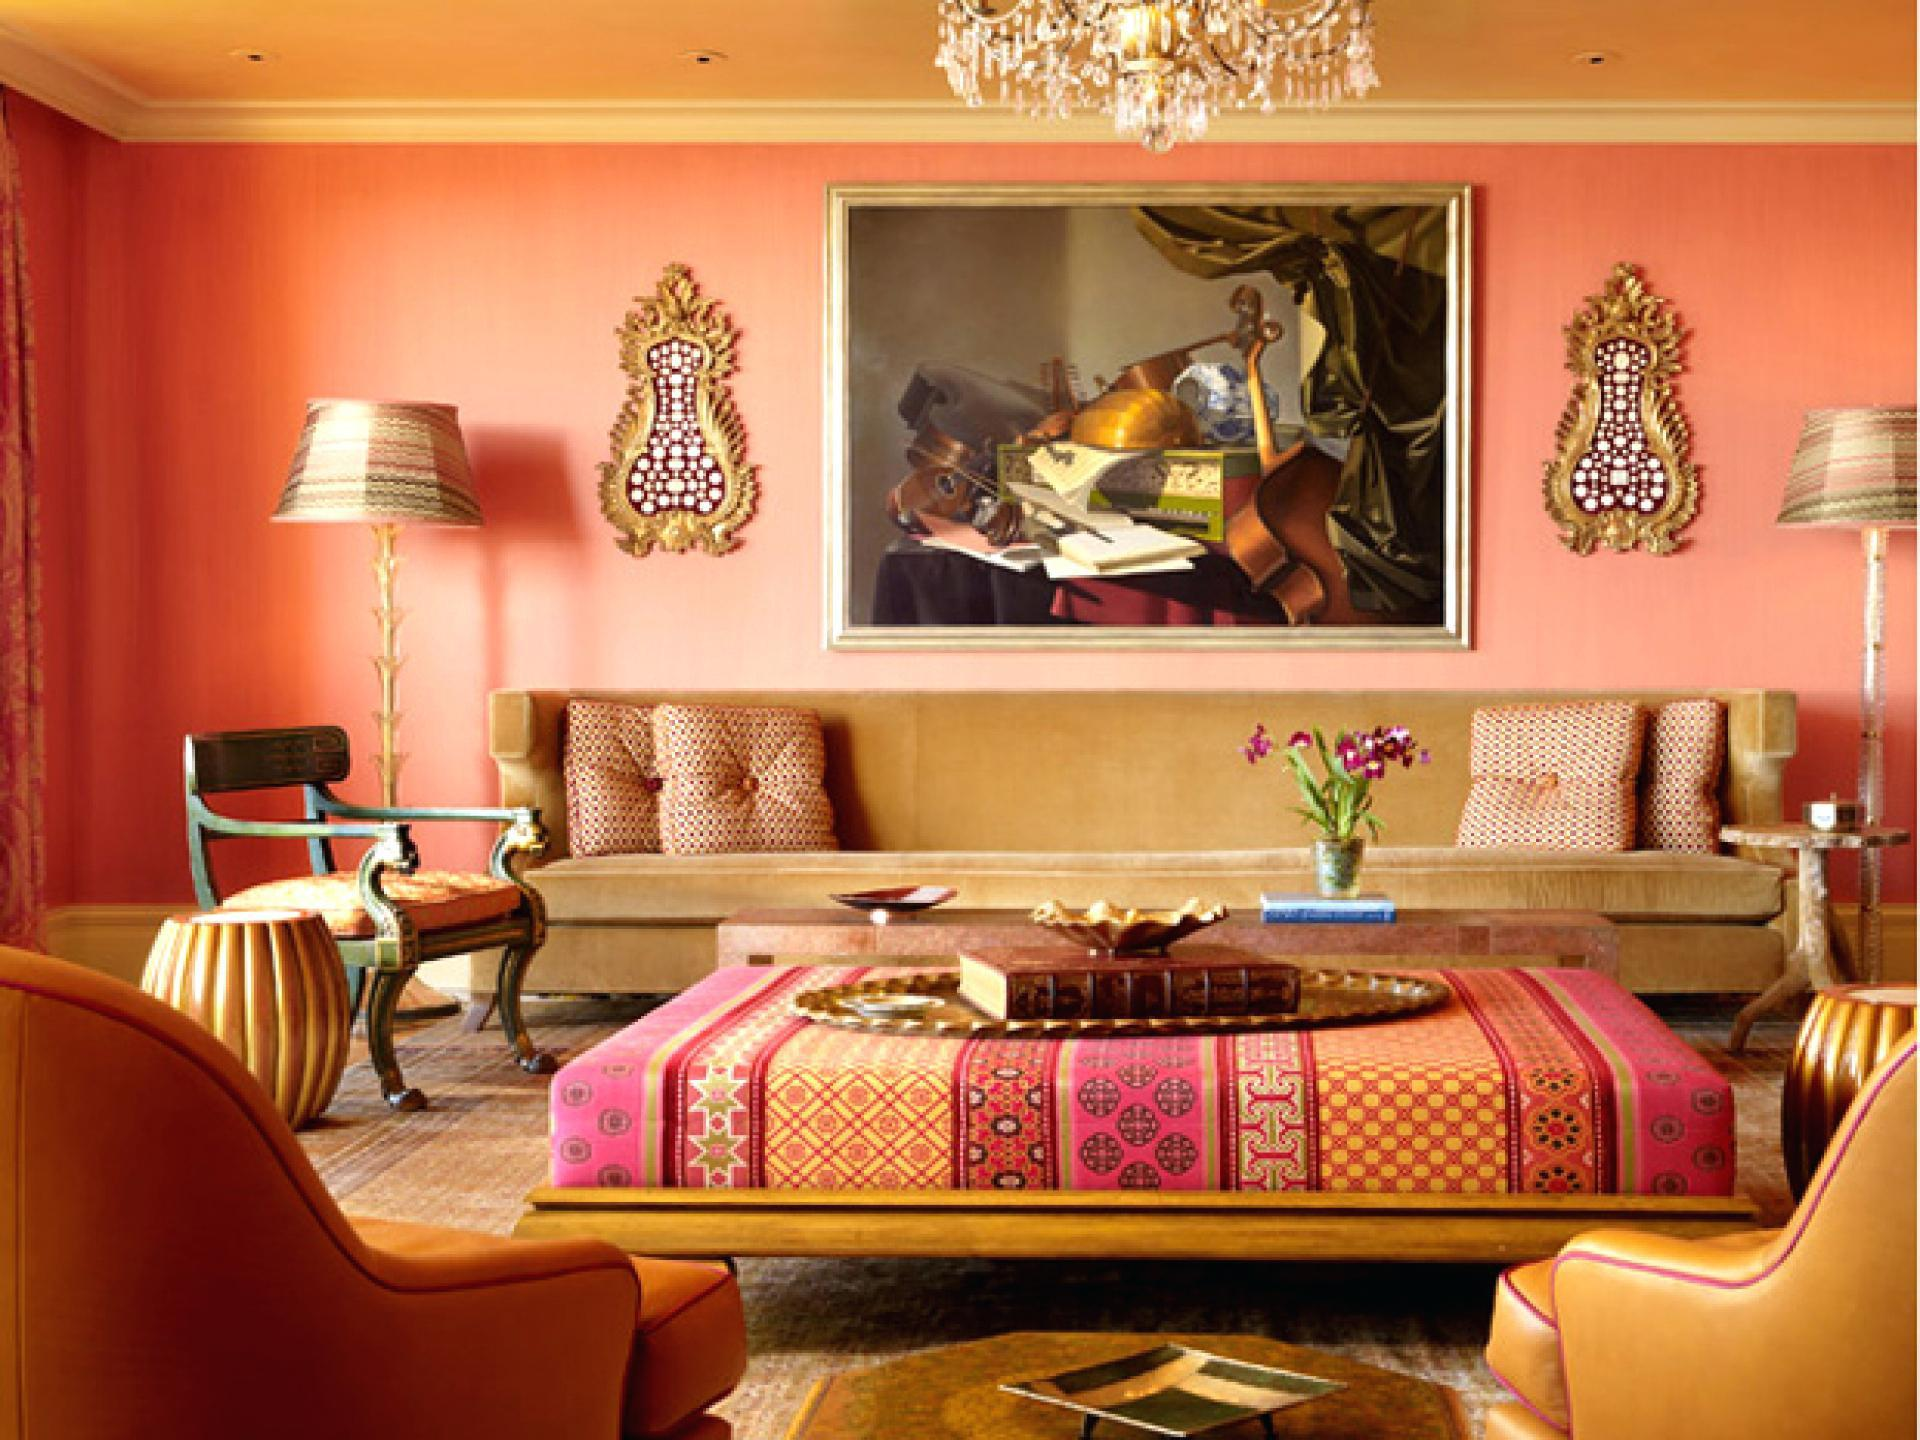 Agreeable Moroccan Style Bedroom Home Interior Design